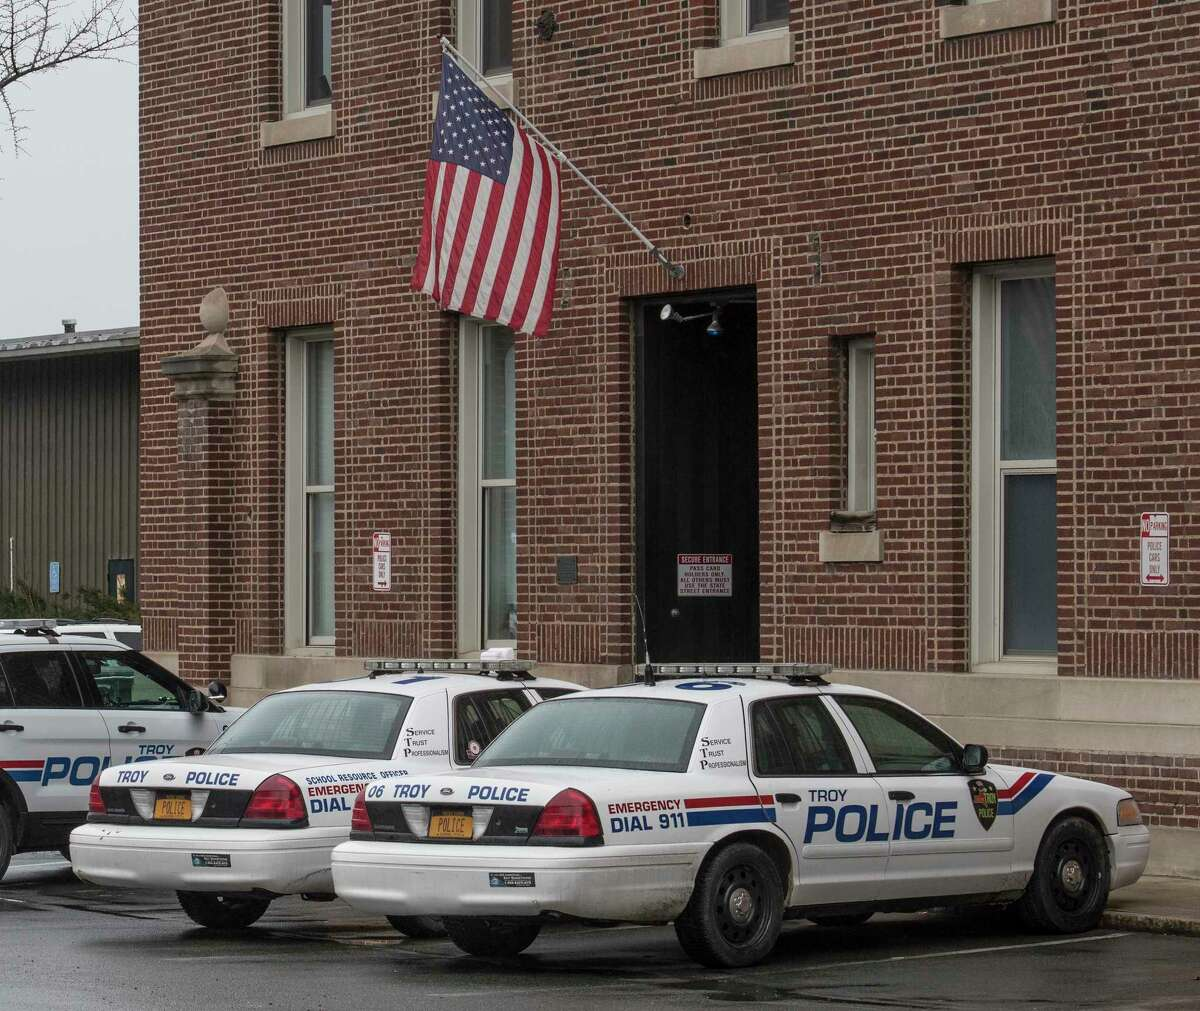 Exterior view of the Troy Police Department on Tuesday, April 3, 2018, in Troy, N.Y. (Skip Dickstein/Times Union)